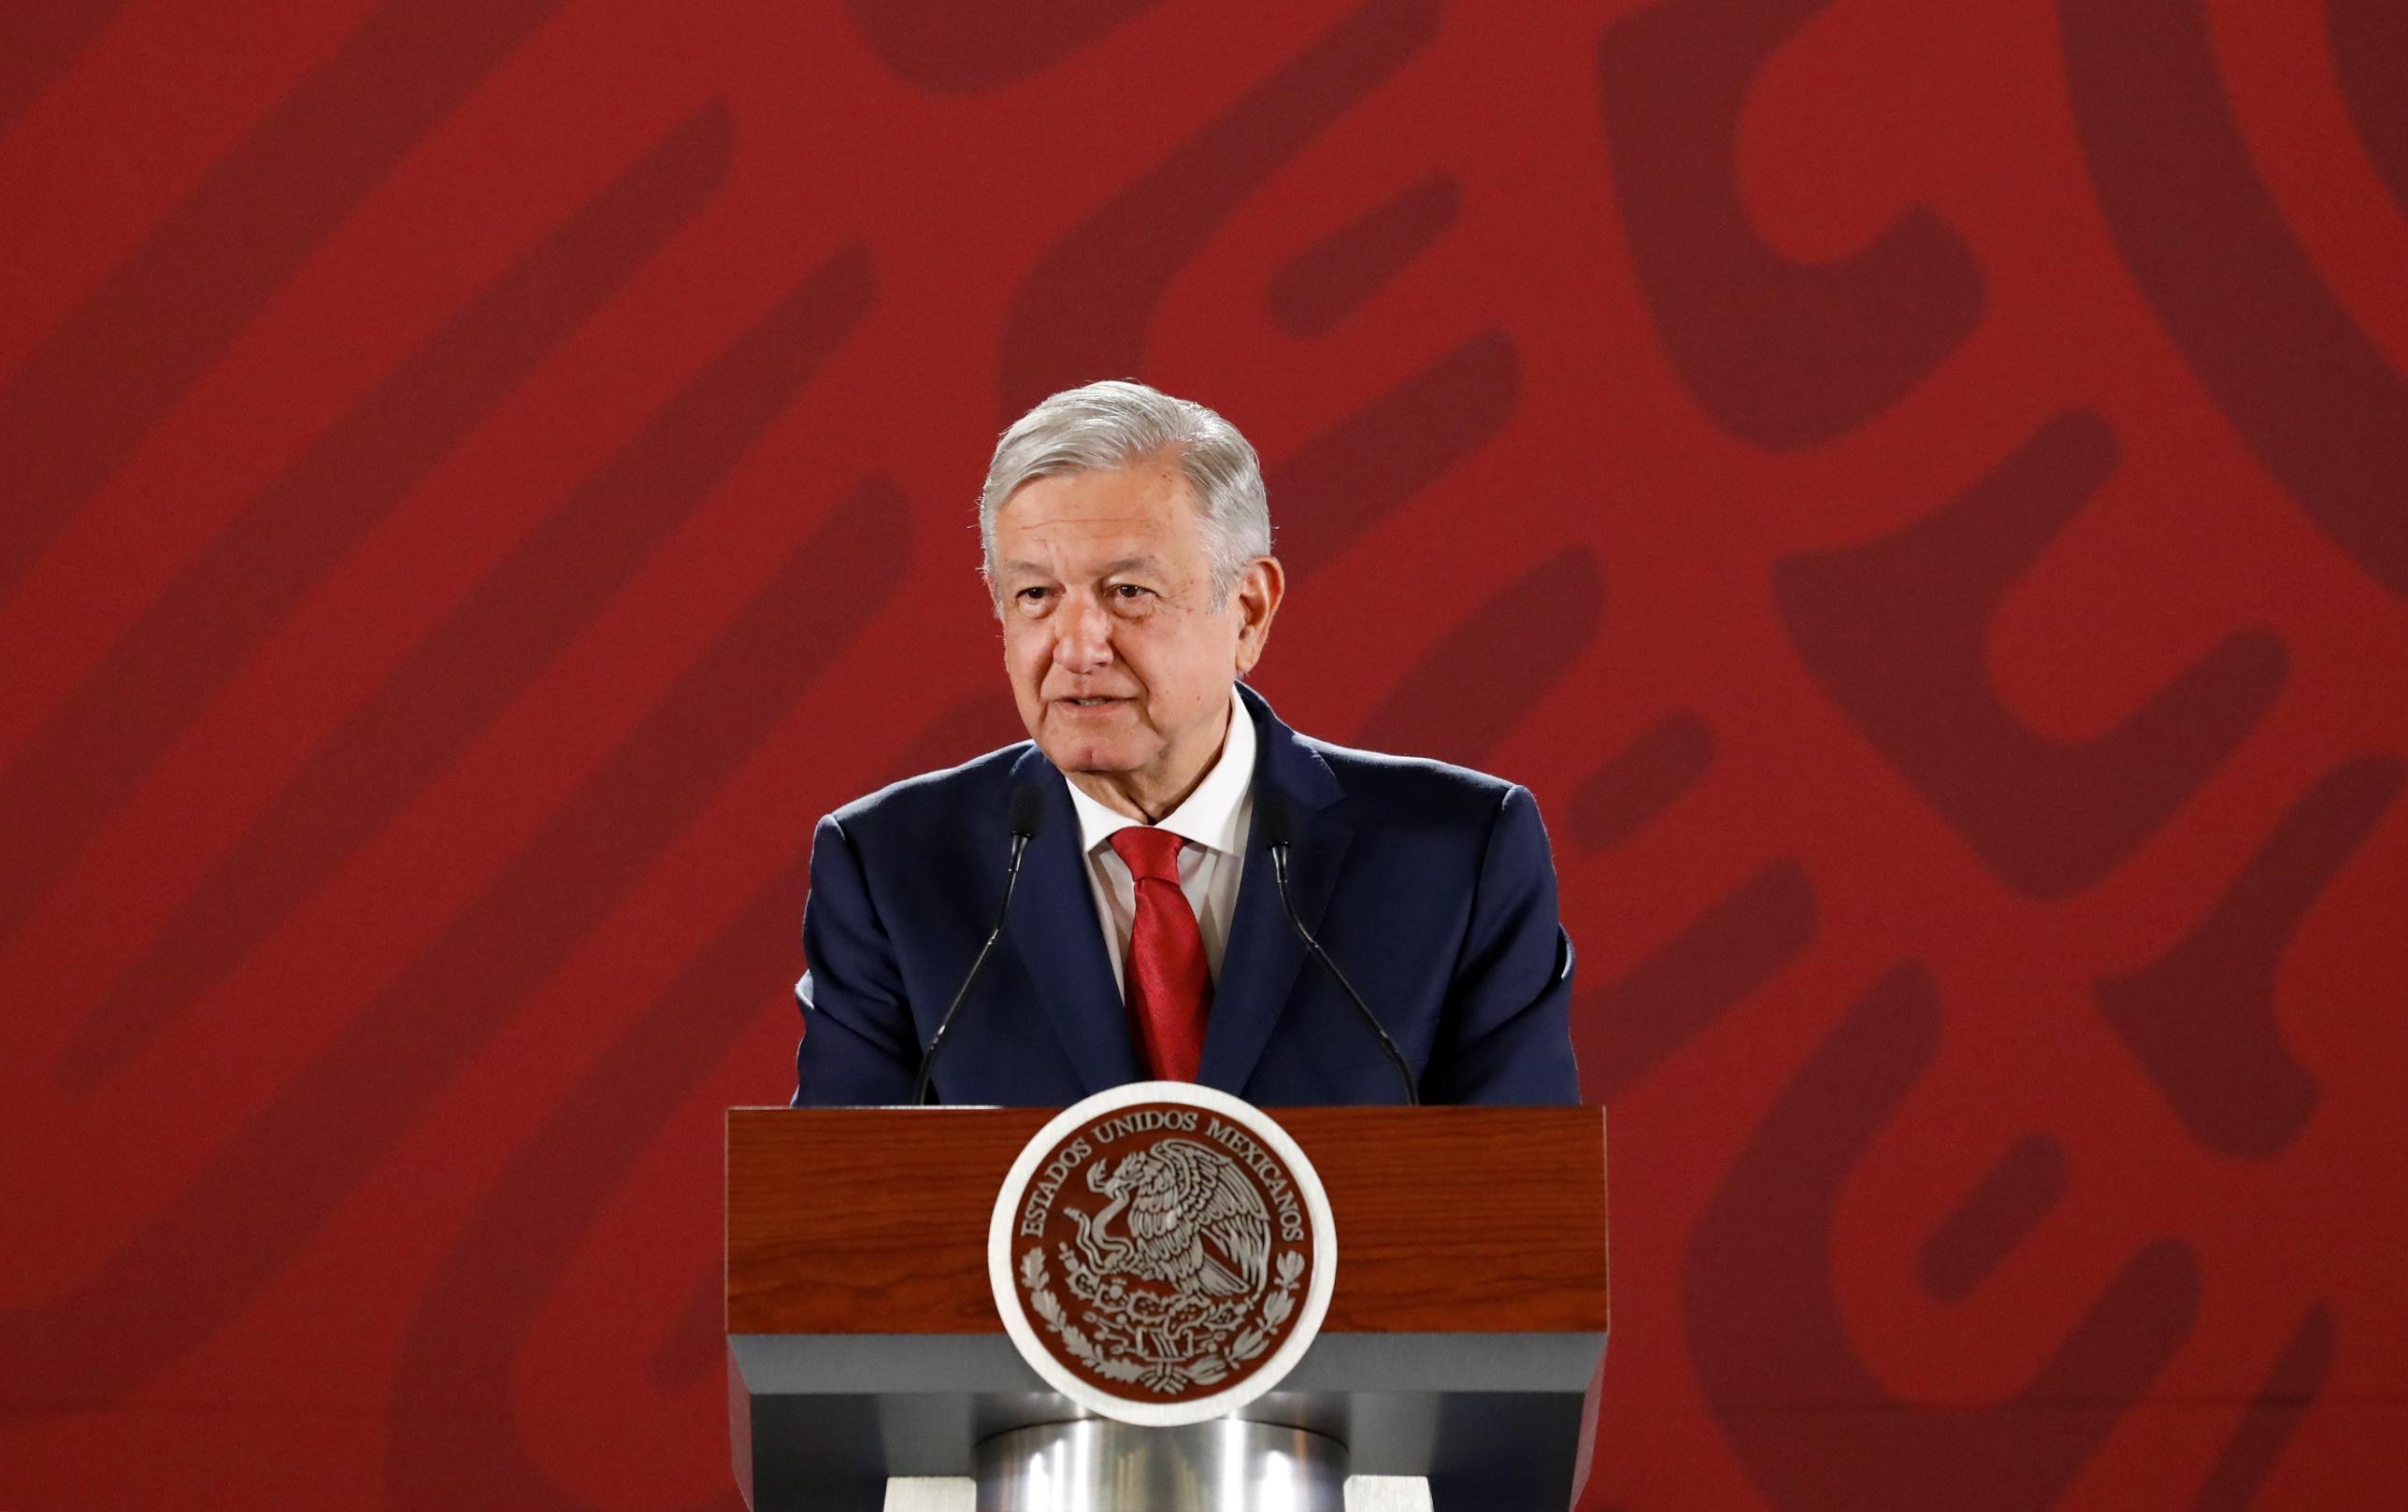 Mexico says no to safe third-country asylum discussion with U.S.